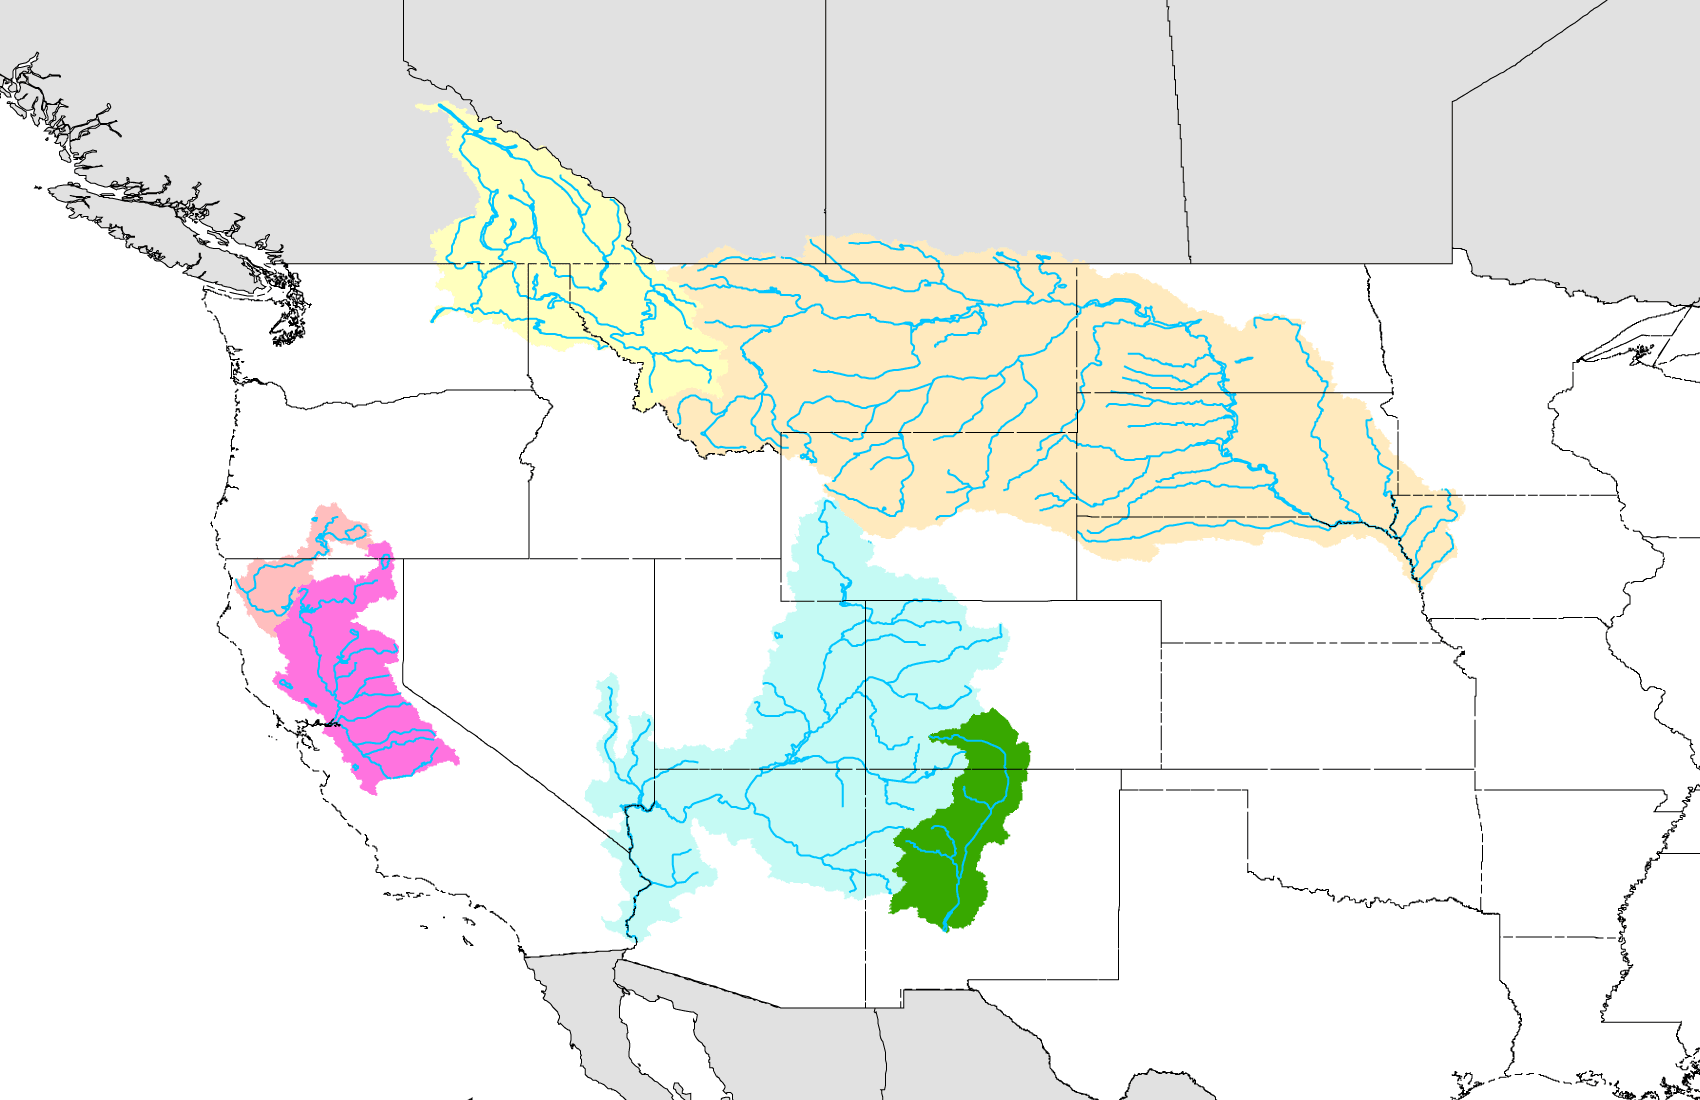 Streamflow Projections For River Basins In The Western US - Map of us river basins